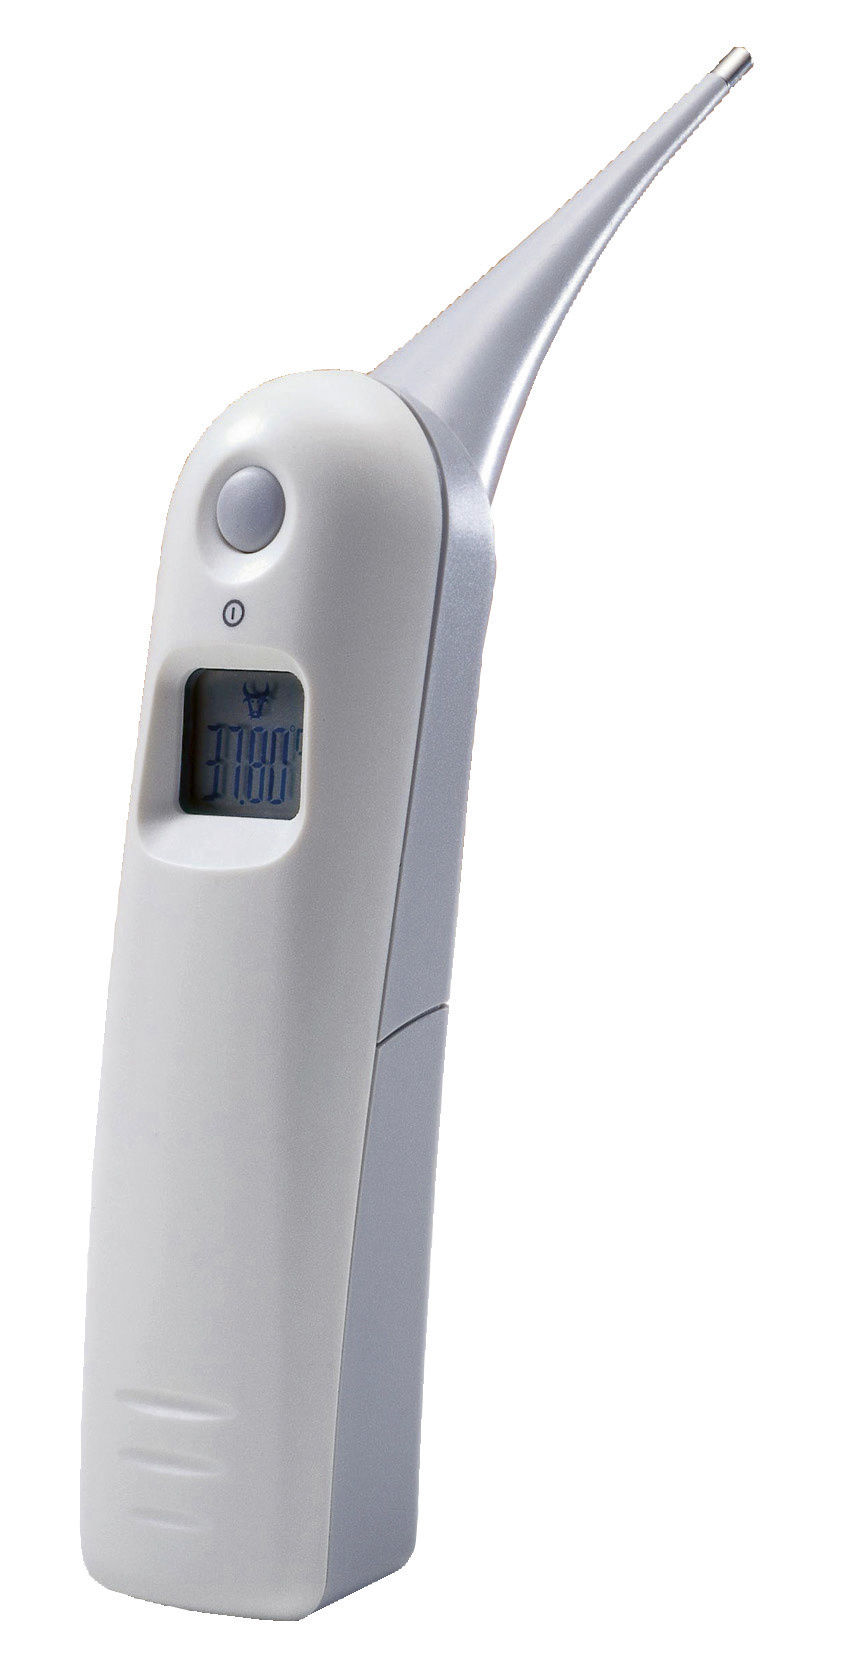 Digital Thermometer topTemp